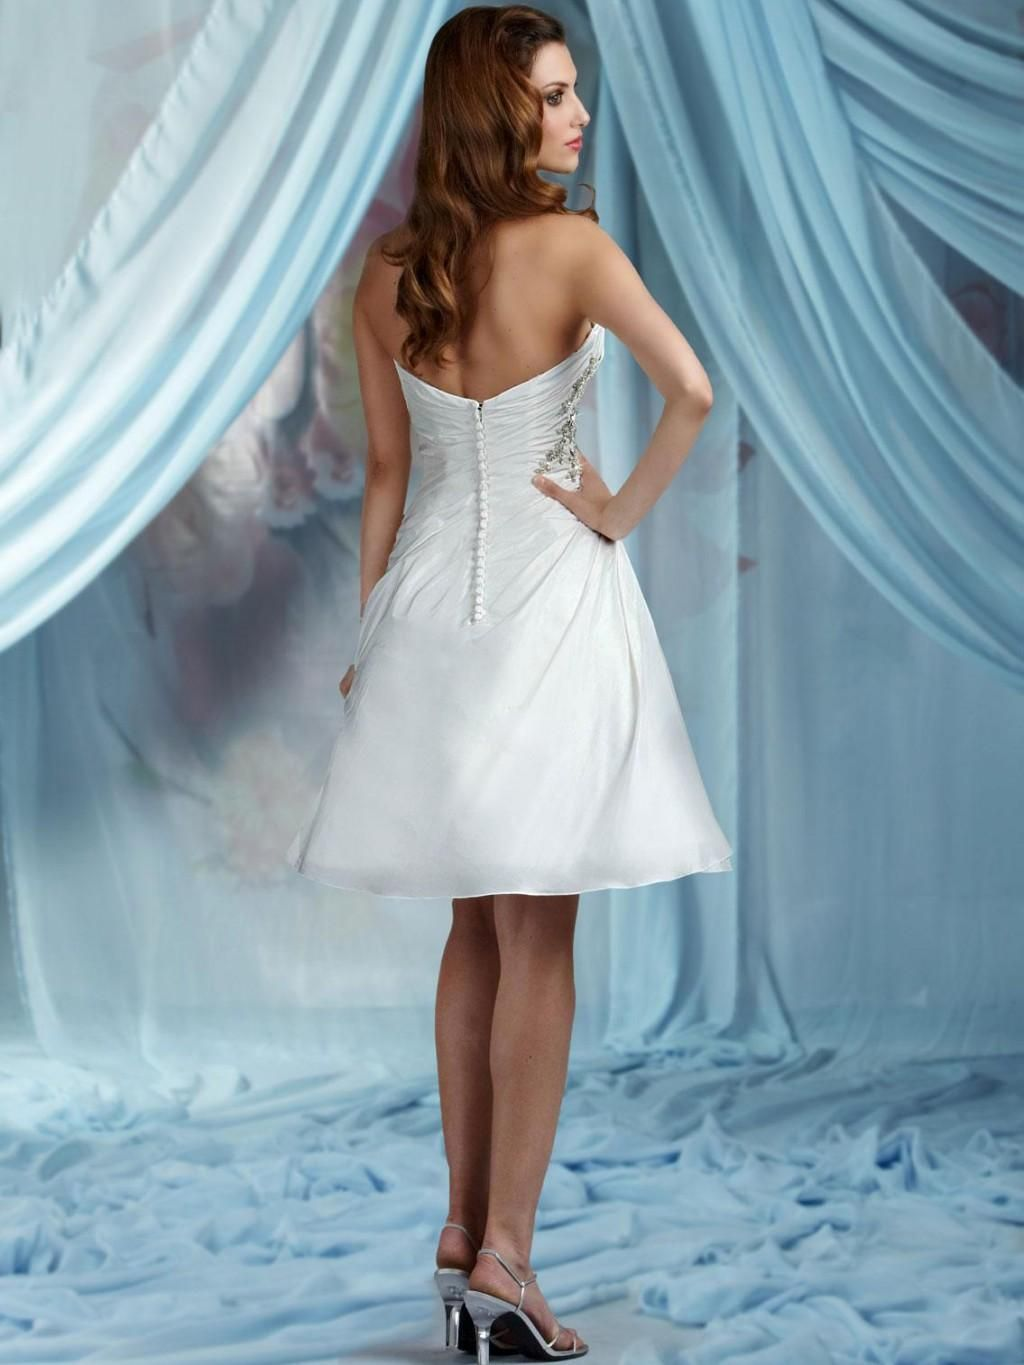 Sexy short wedding dresses intimates men sexy underwear sexy